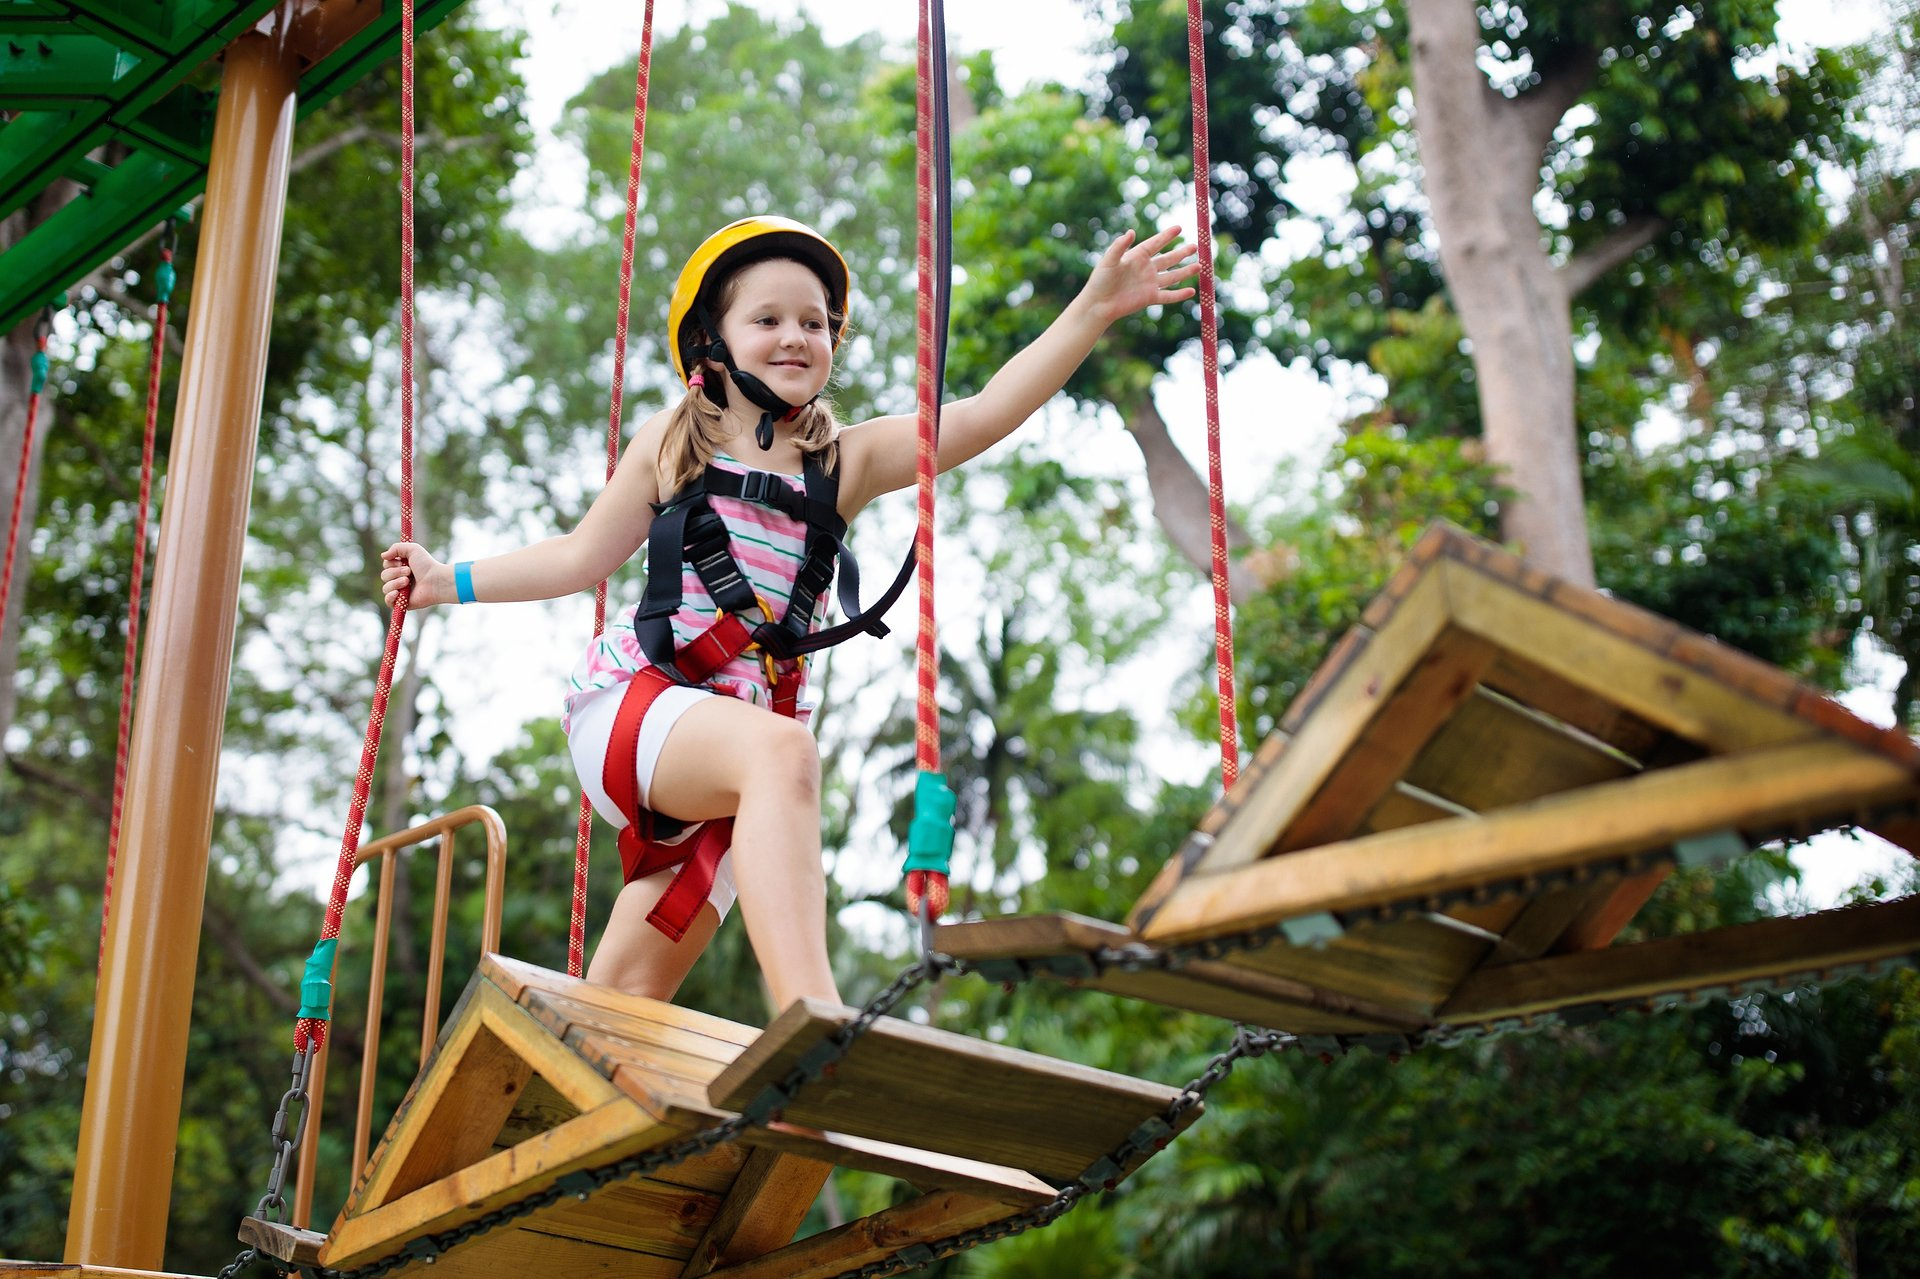 The summer physical activity of children is a task for parents